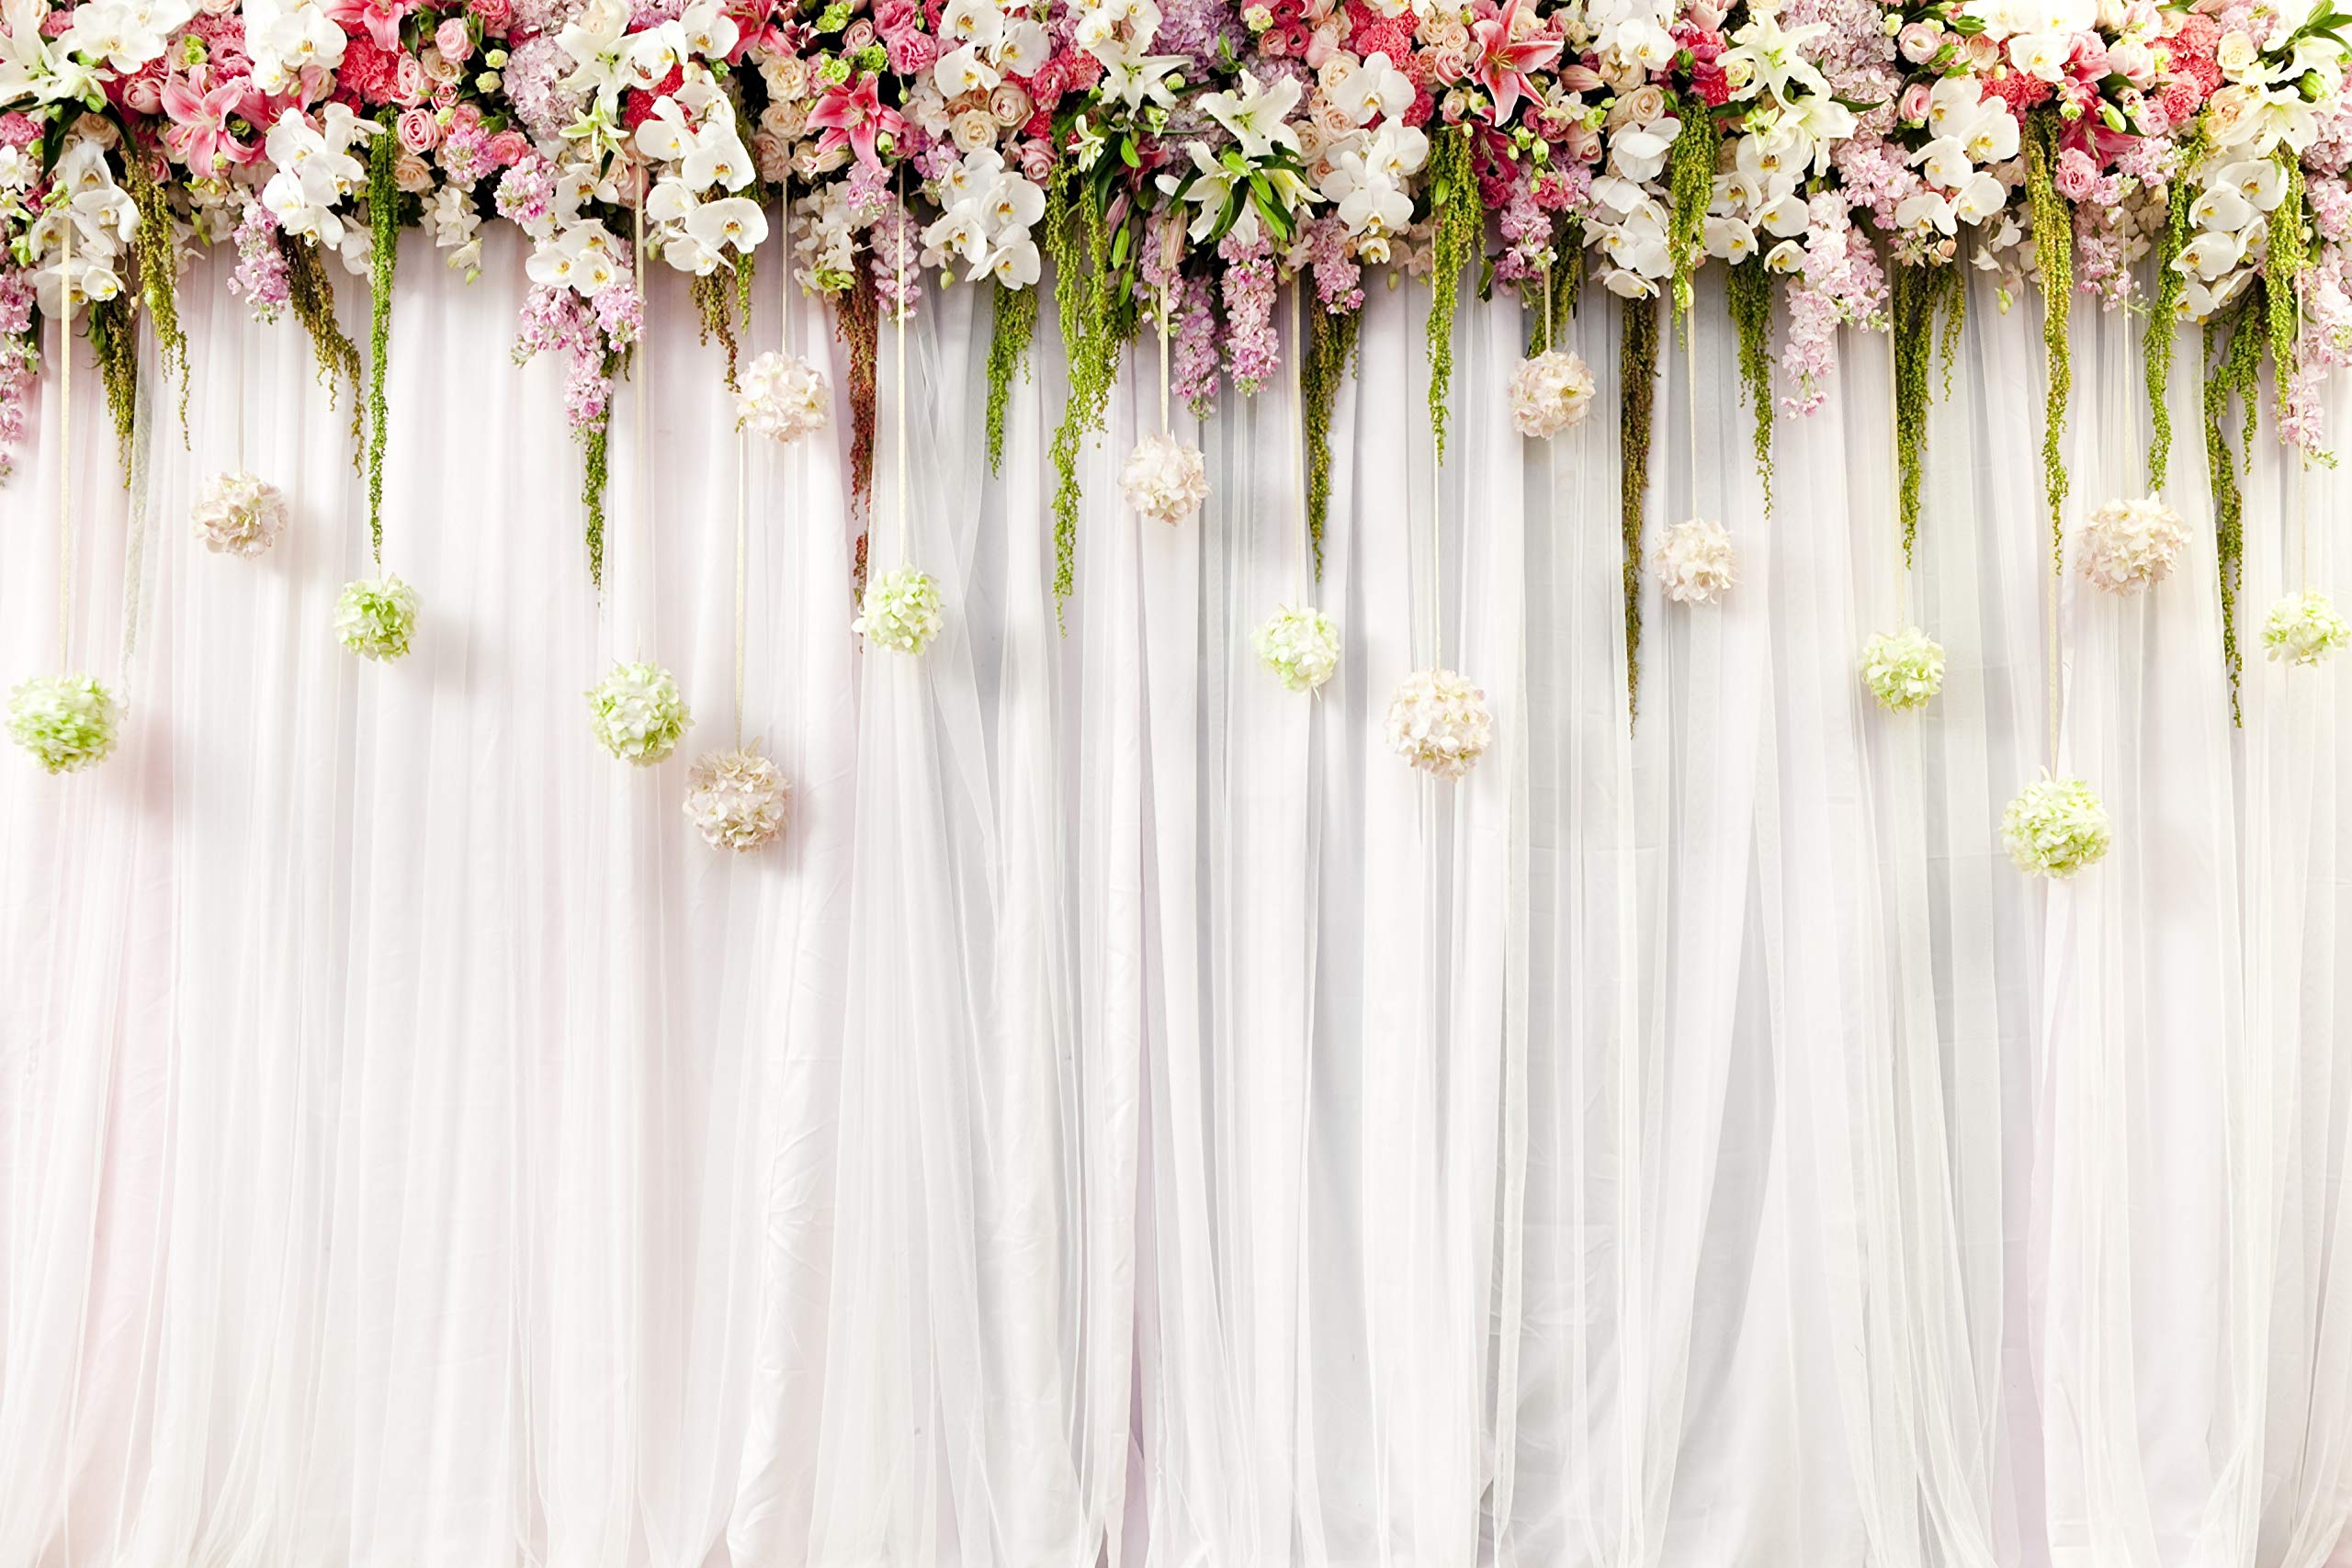 Wedding Flower Curtain Backdrop Chic Romantic Wedding Stage Scene Step and Repeat Party White Printed Fabric Photography Background (G0559, 12' Wide by 8' Tall)